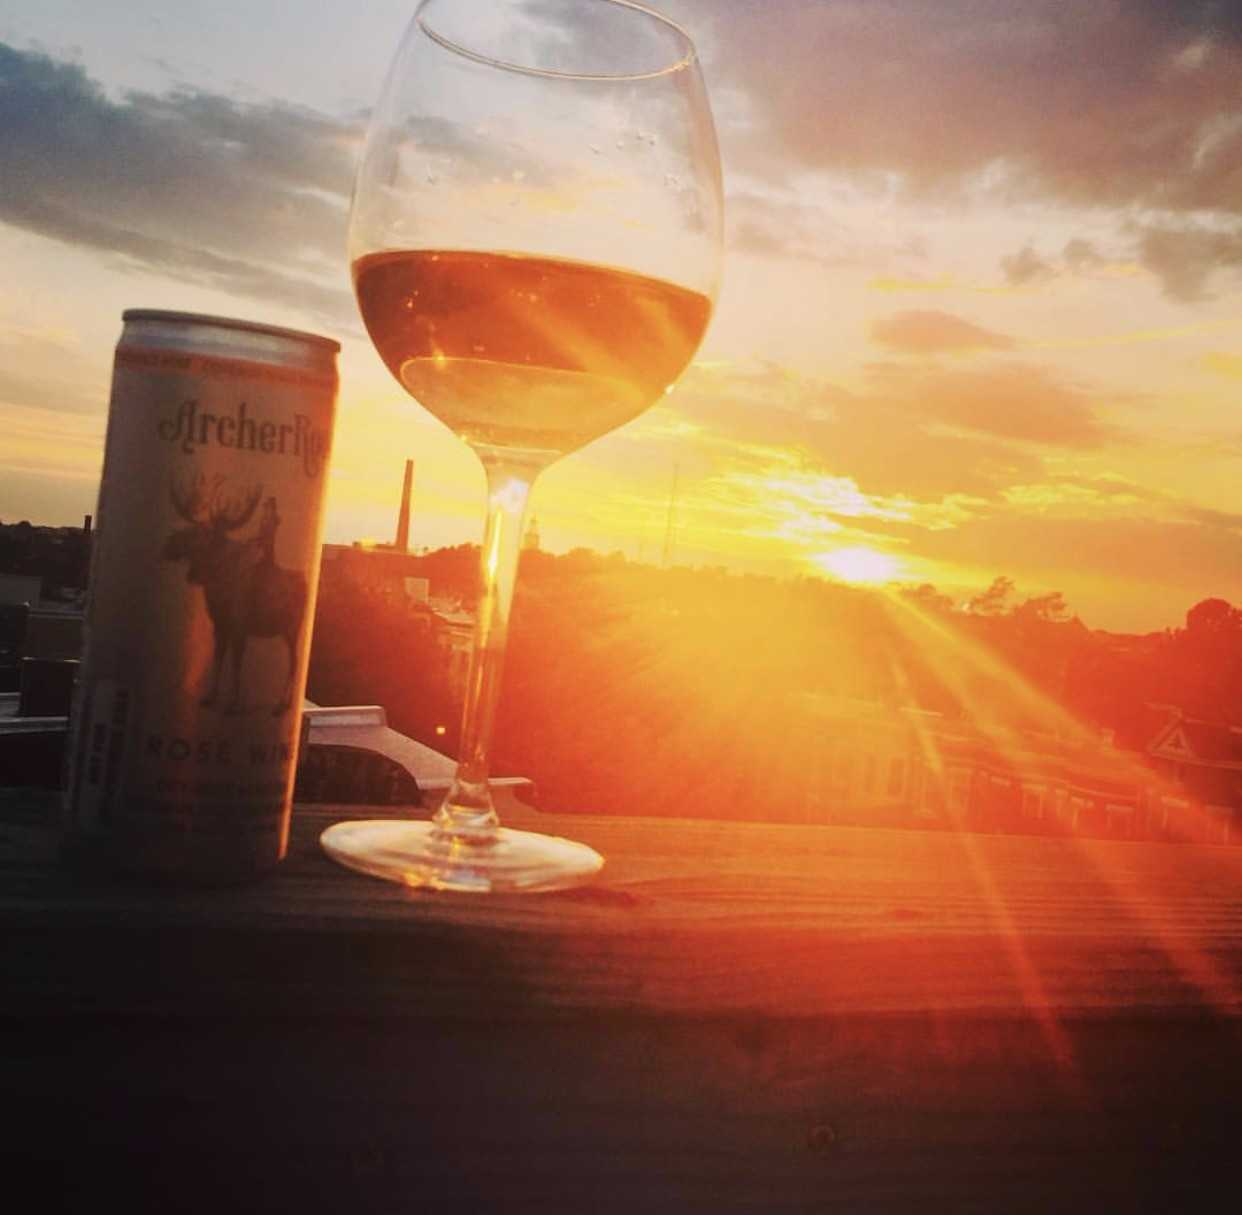 Rosé all day this summer in Bloomingdale. (Image via @canuck_dc)